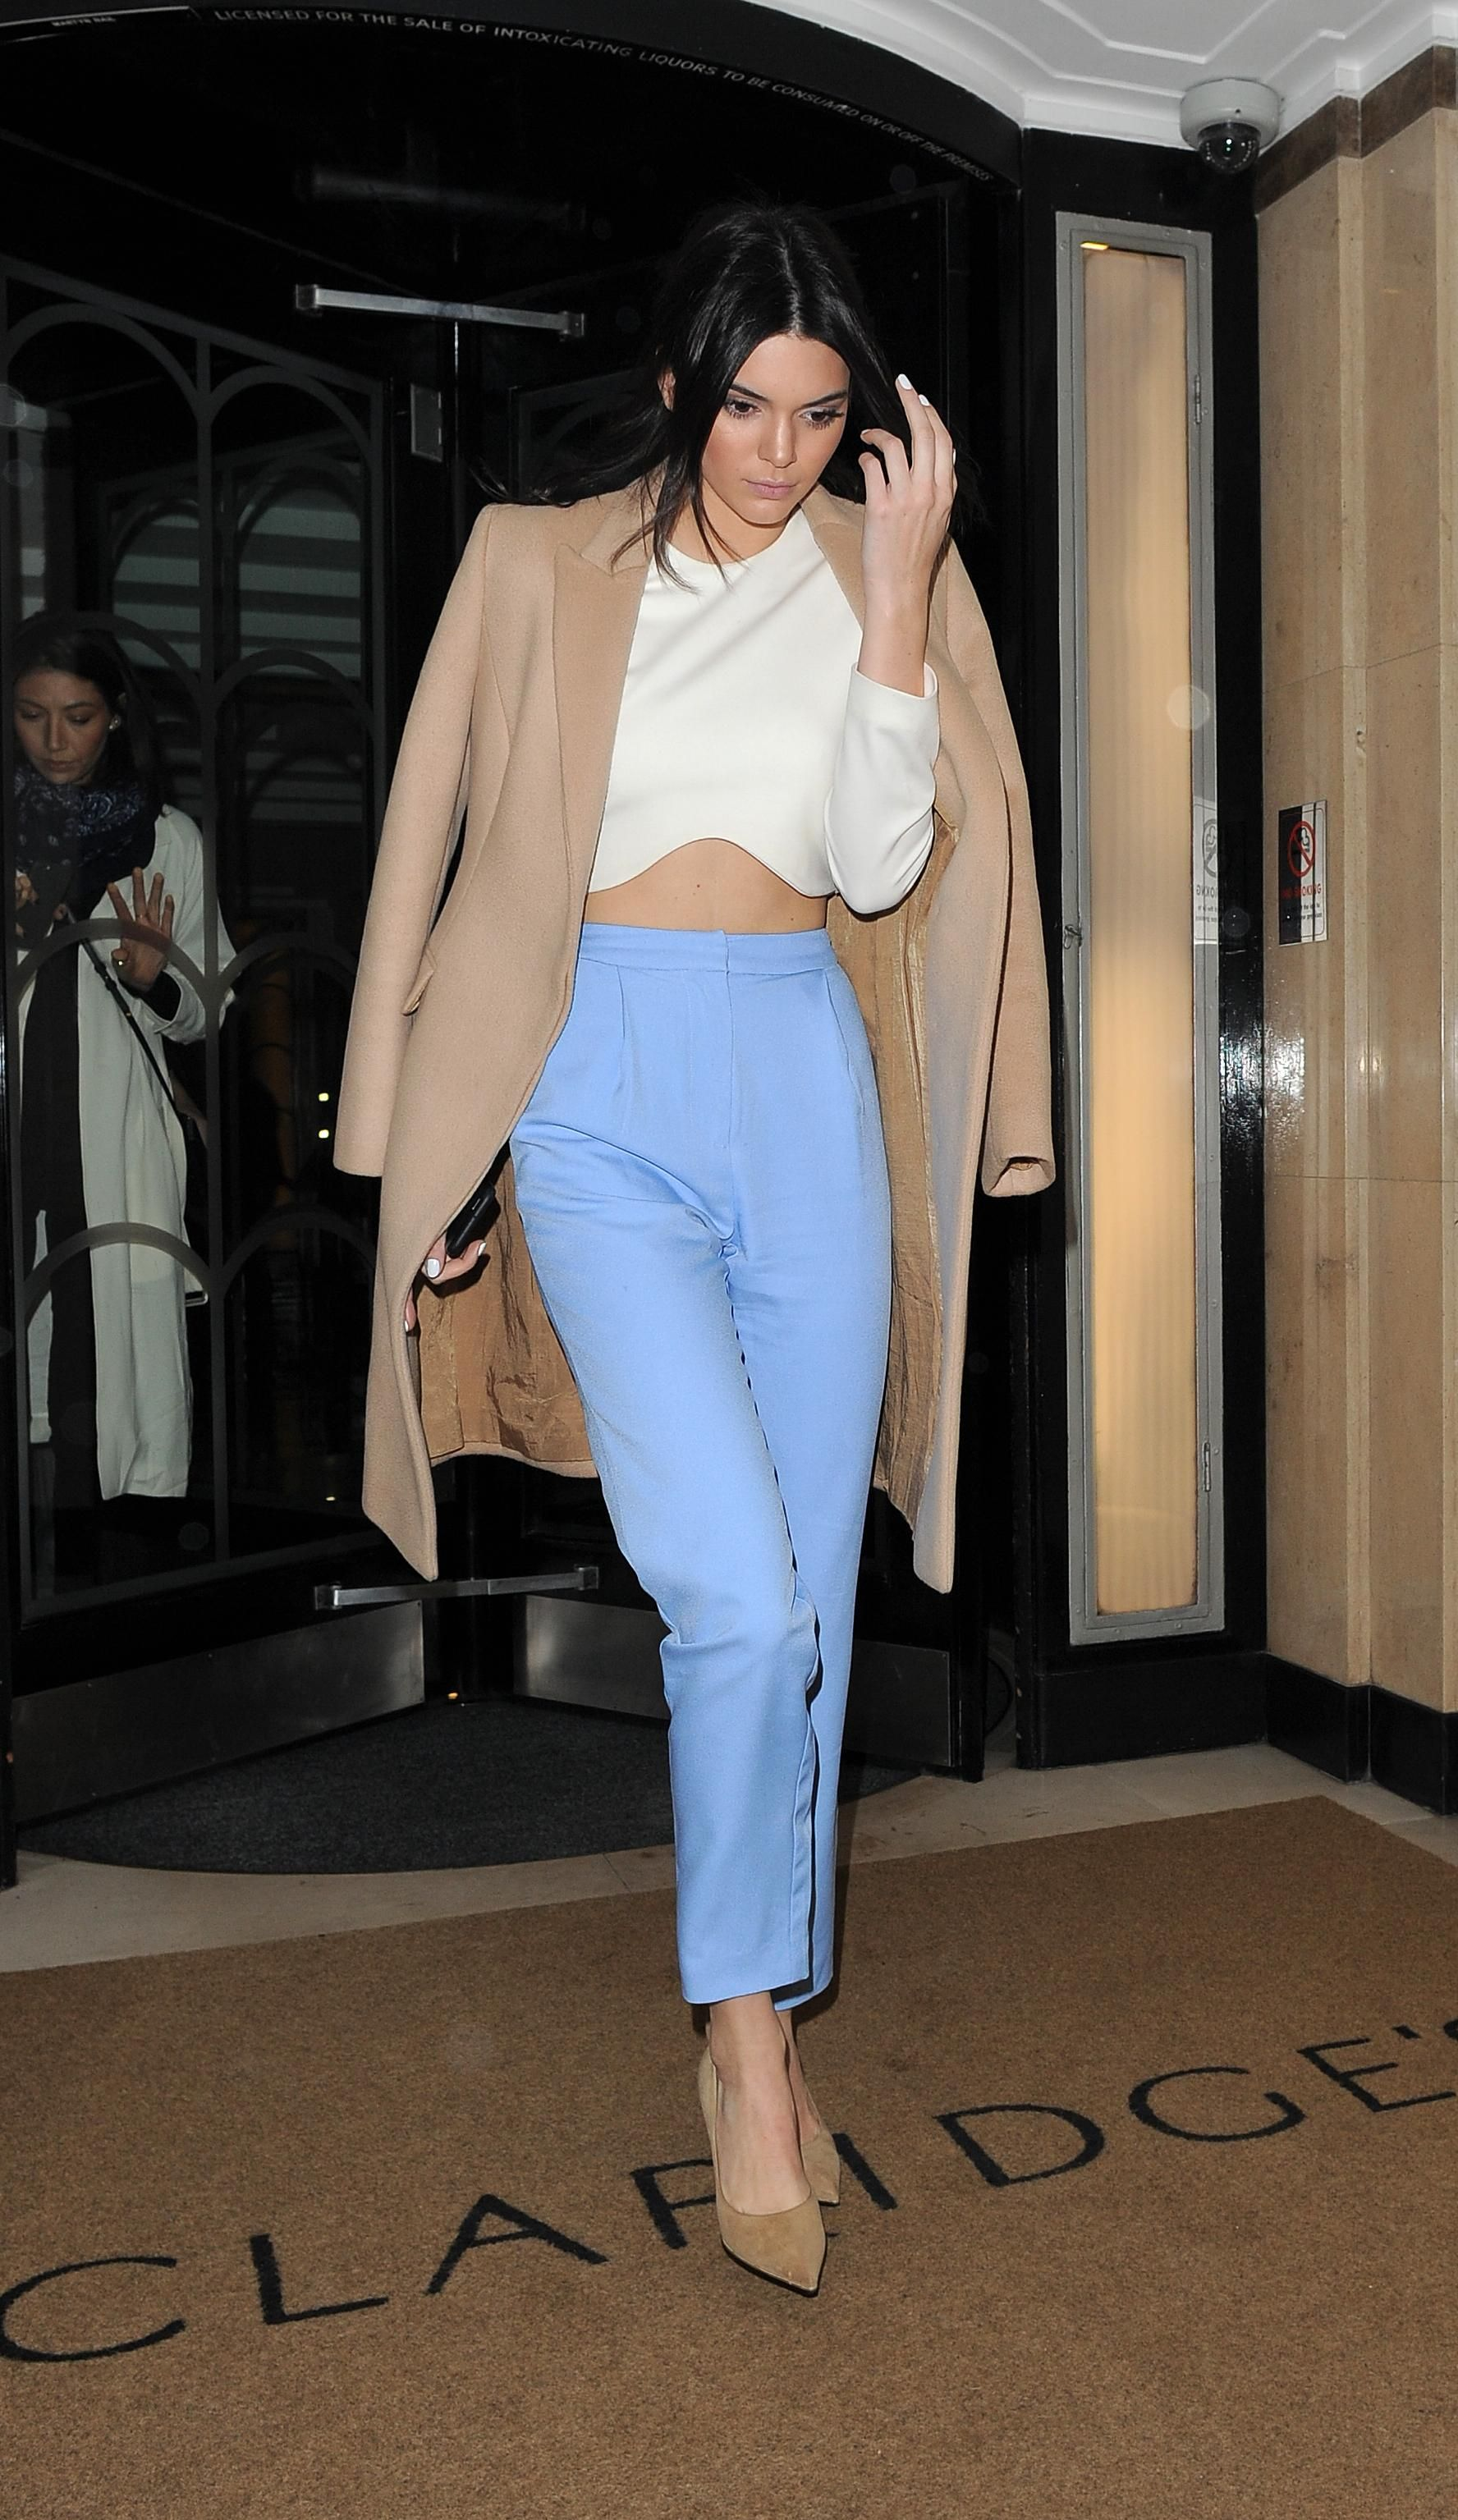 e826d9fbda264f Kendall Jenner Street Style  See Her 20 Best Looks - pastel blue high- waisted trousers worn with a white long sleeve crop top + over-the-shoulder  camel coat ...